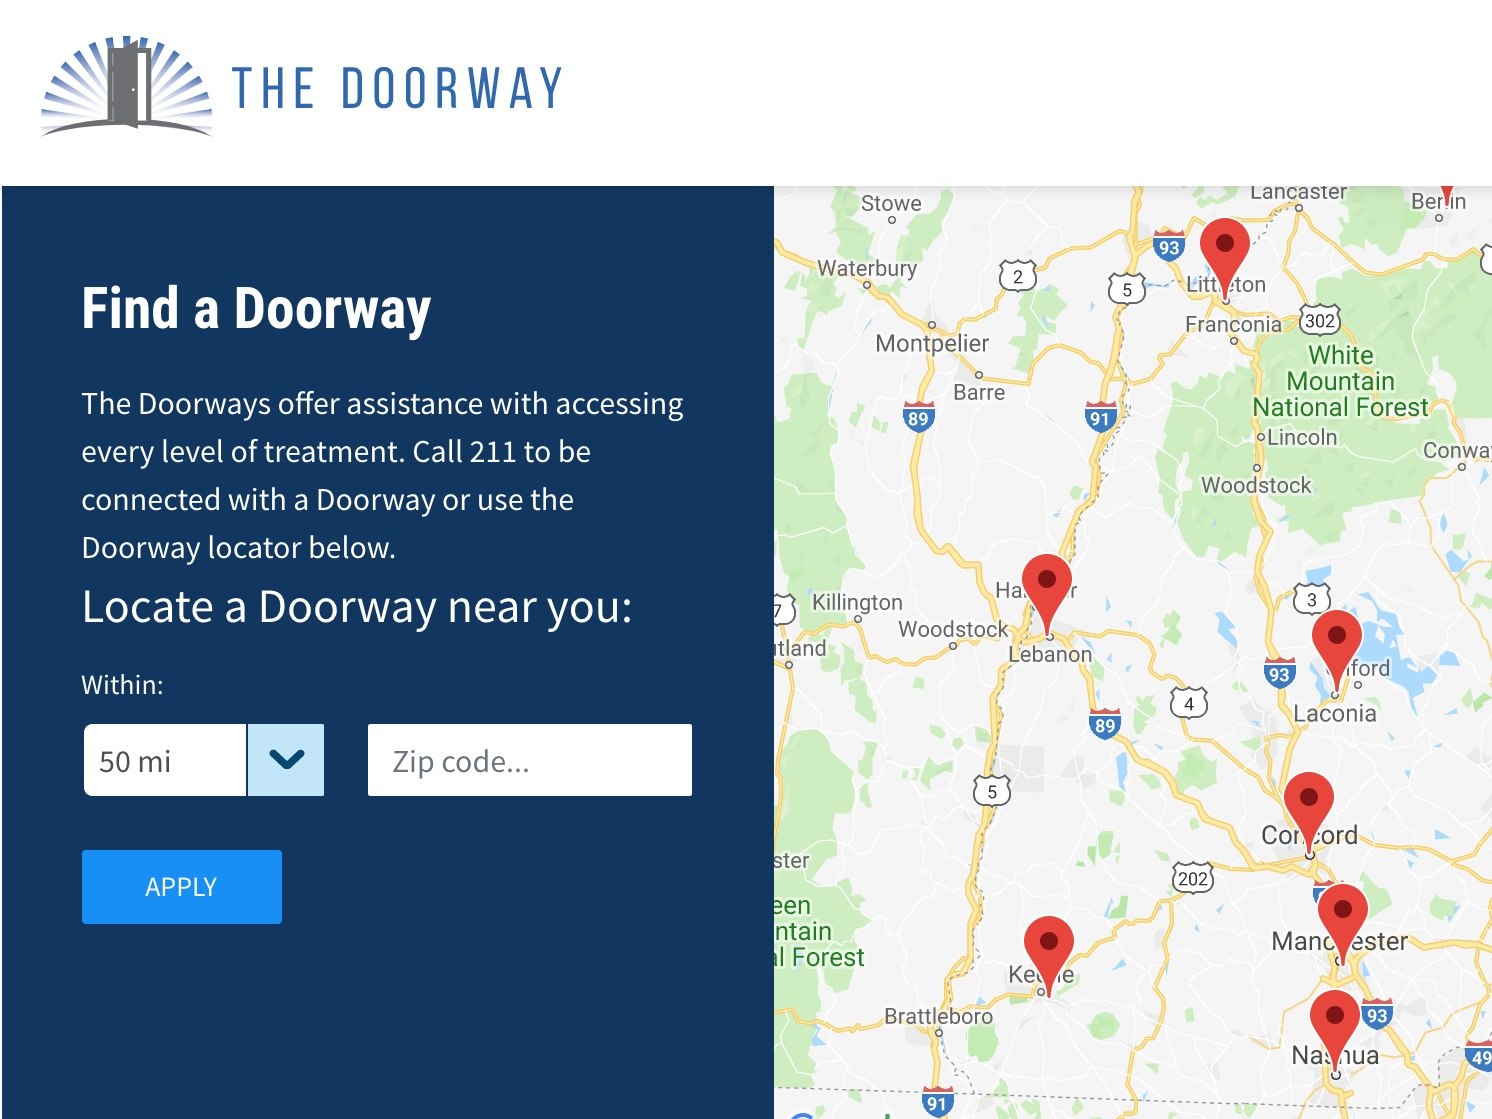 The doorway - Nine Doorway locations provide single points of entry for people seeking help for substance use, whether they need treatment, support, or resources for prevention and awareness. Naloxone can be accessed at any Doorway location.